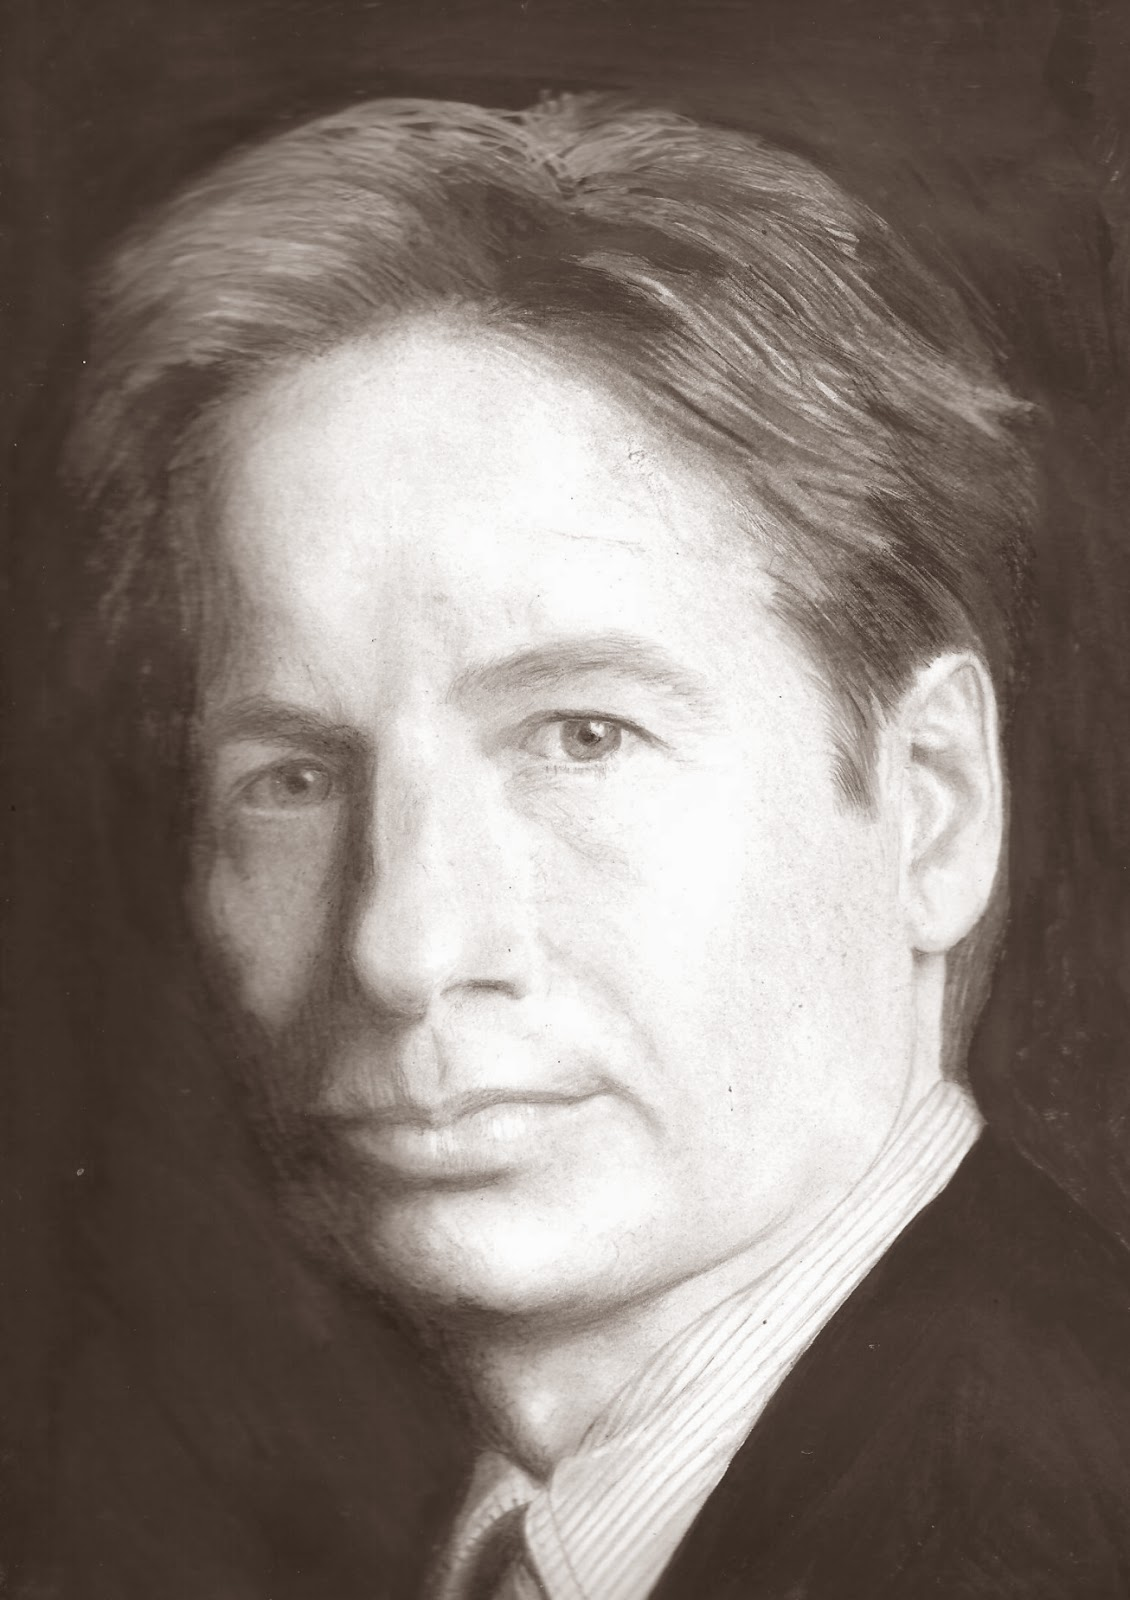 David-Duchovny-desenho-a-grafite-Fox-Mulder-portrait-graphite-pencil-drawing-